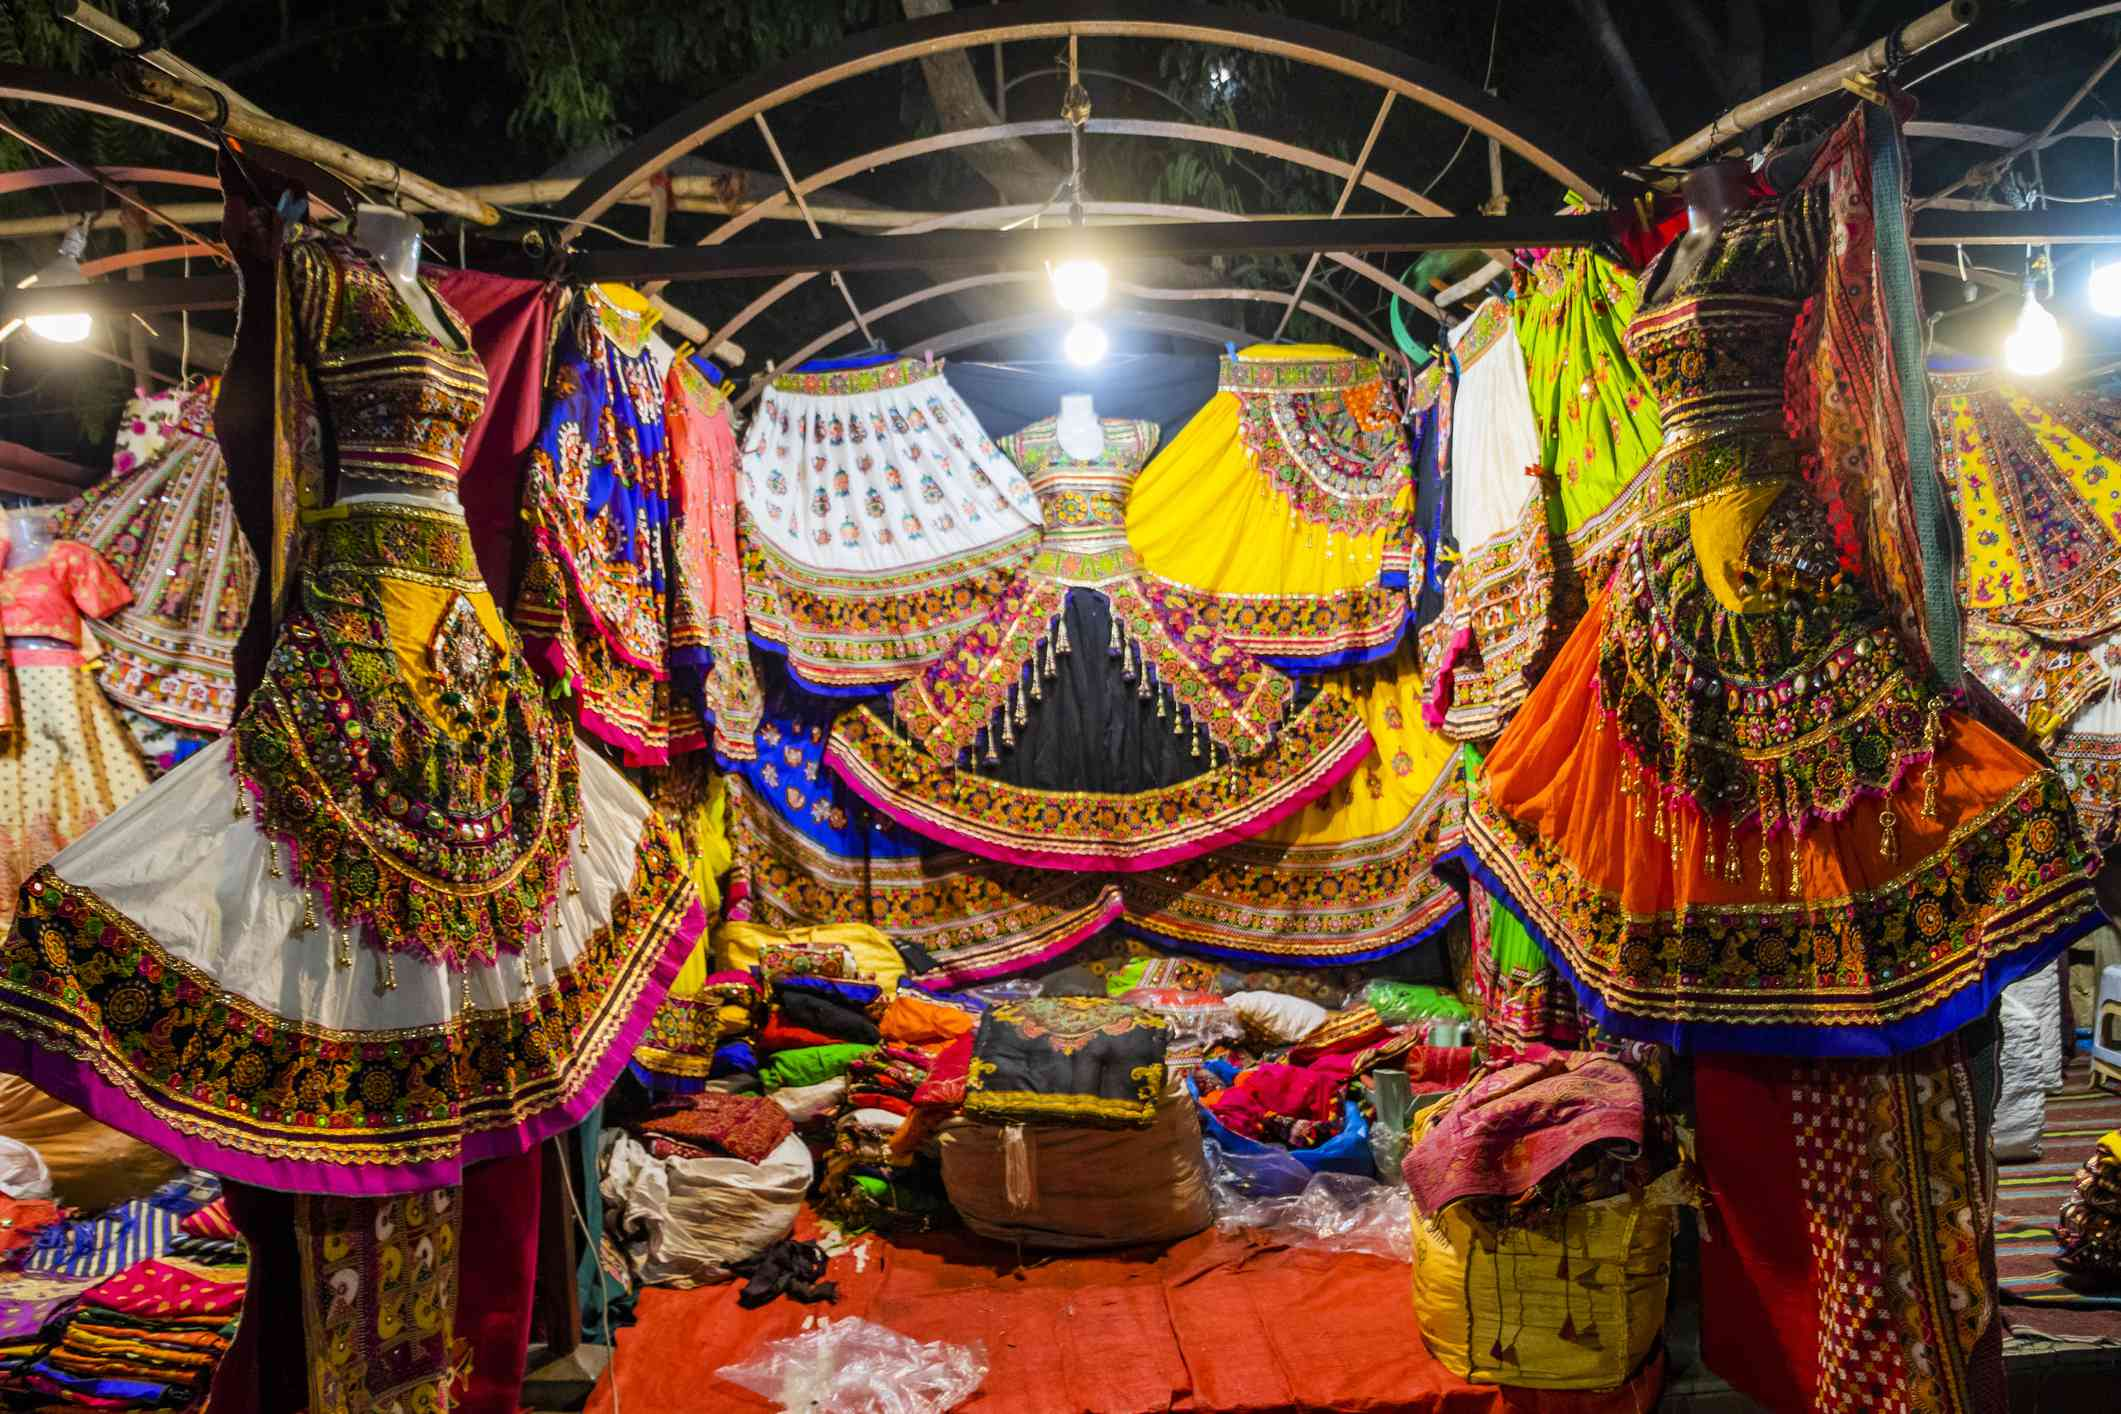 Colorful handicrafts for sale in Law Garden. Ahmedabad